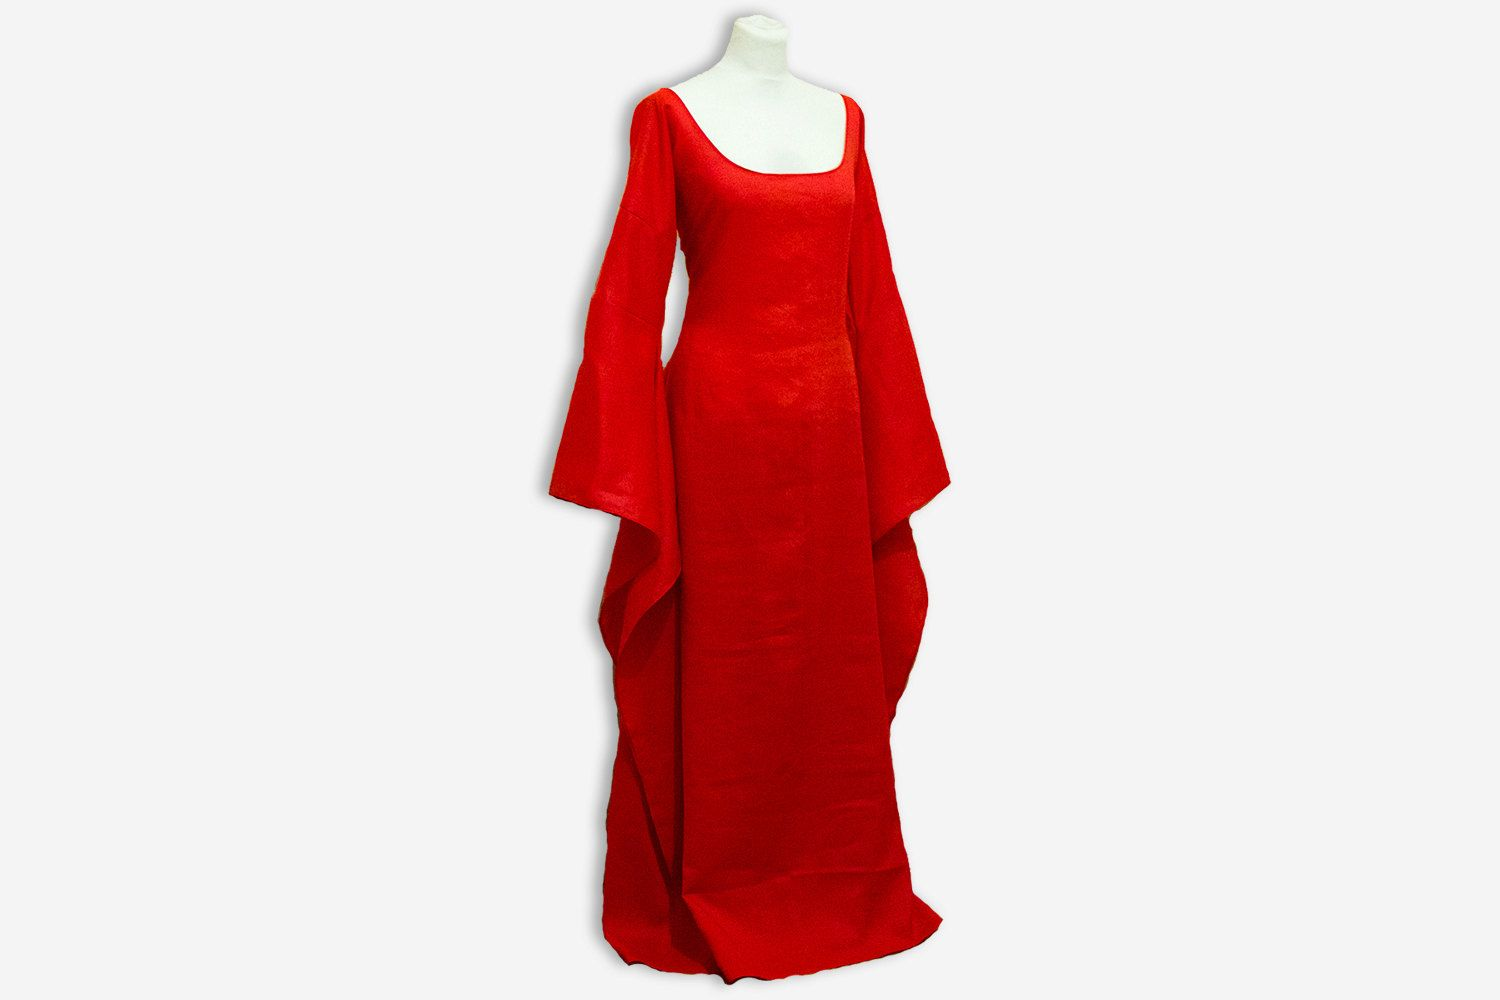 Melisandre dress Game of Thrones halloween costume Melisandre cosplay wedding dress handfasting celtic wedding red priestess dress & Game of Thrones costume Melisandre dress medieval dress Halloween ...